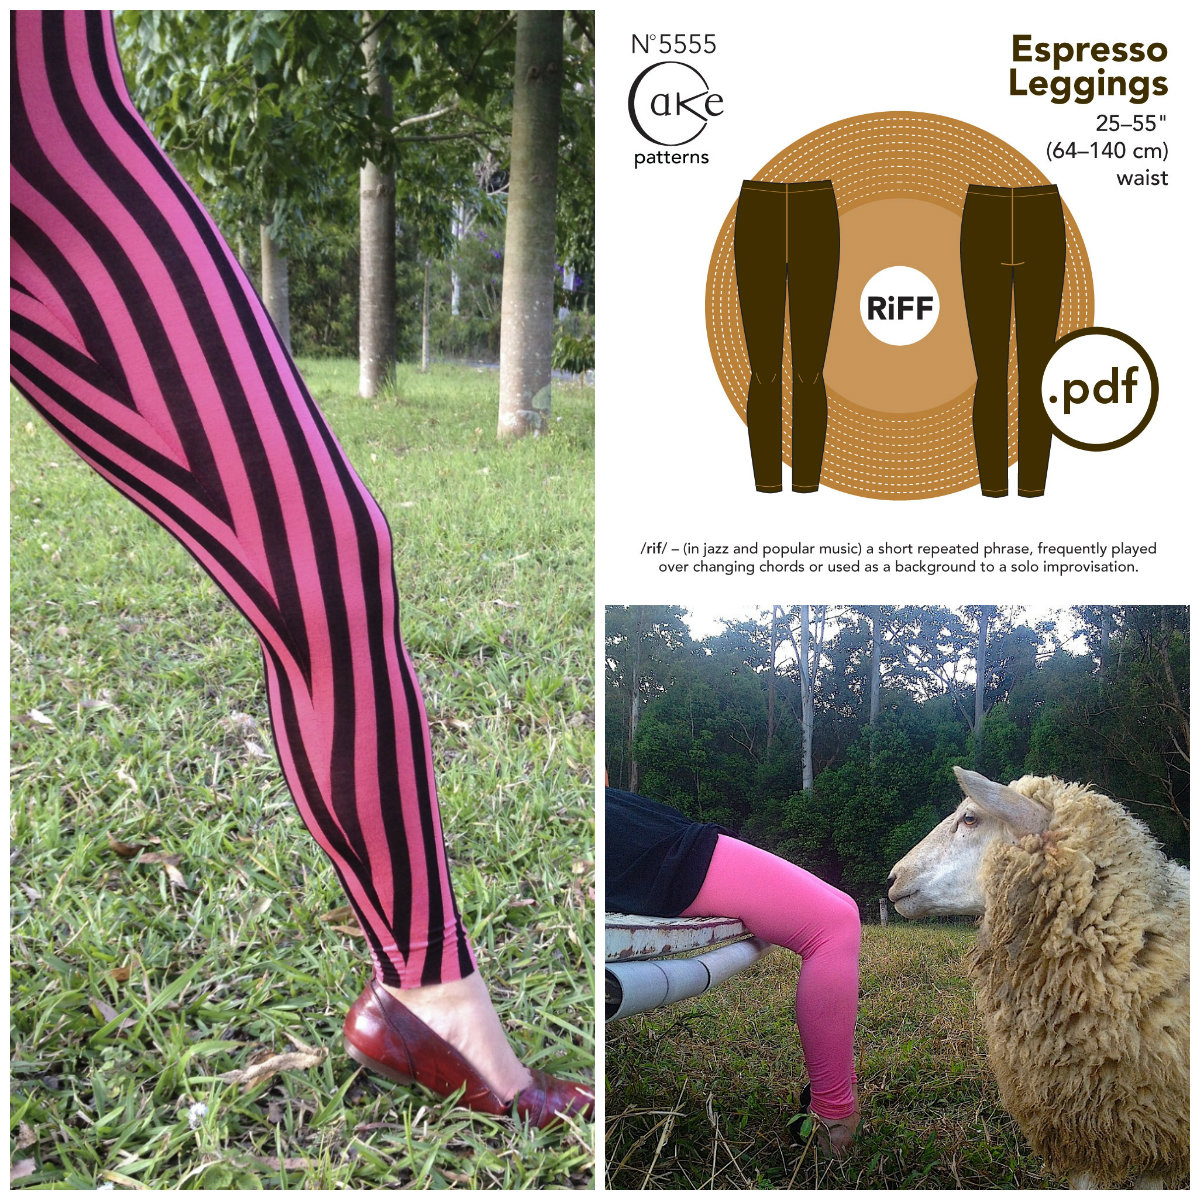 Cake patterns Espresso Leggings Downloadable Pattern 5555